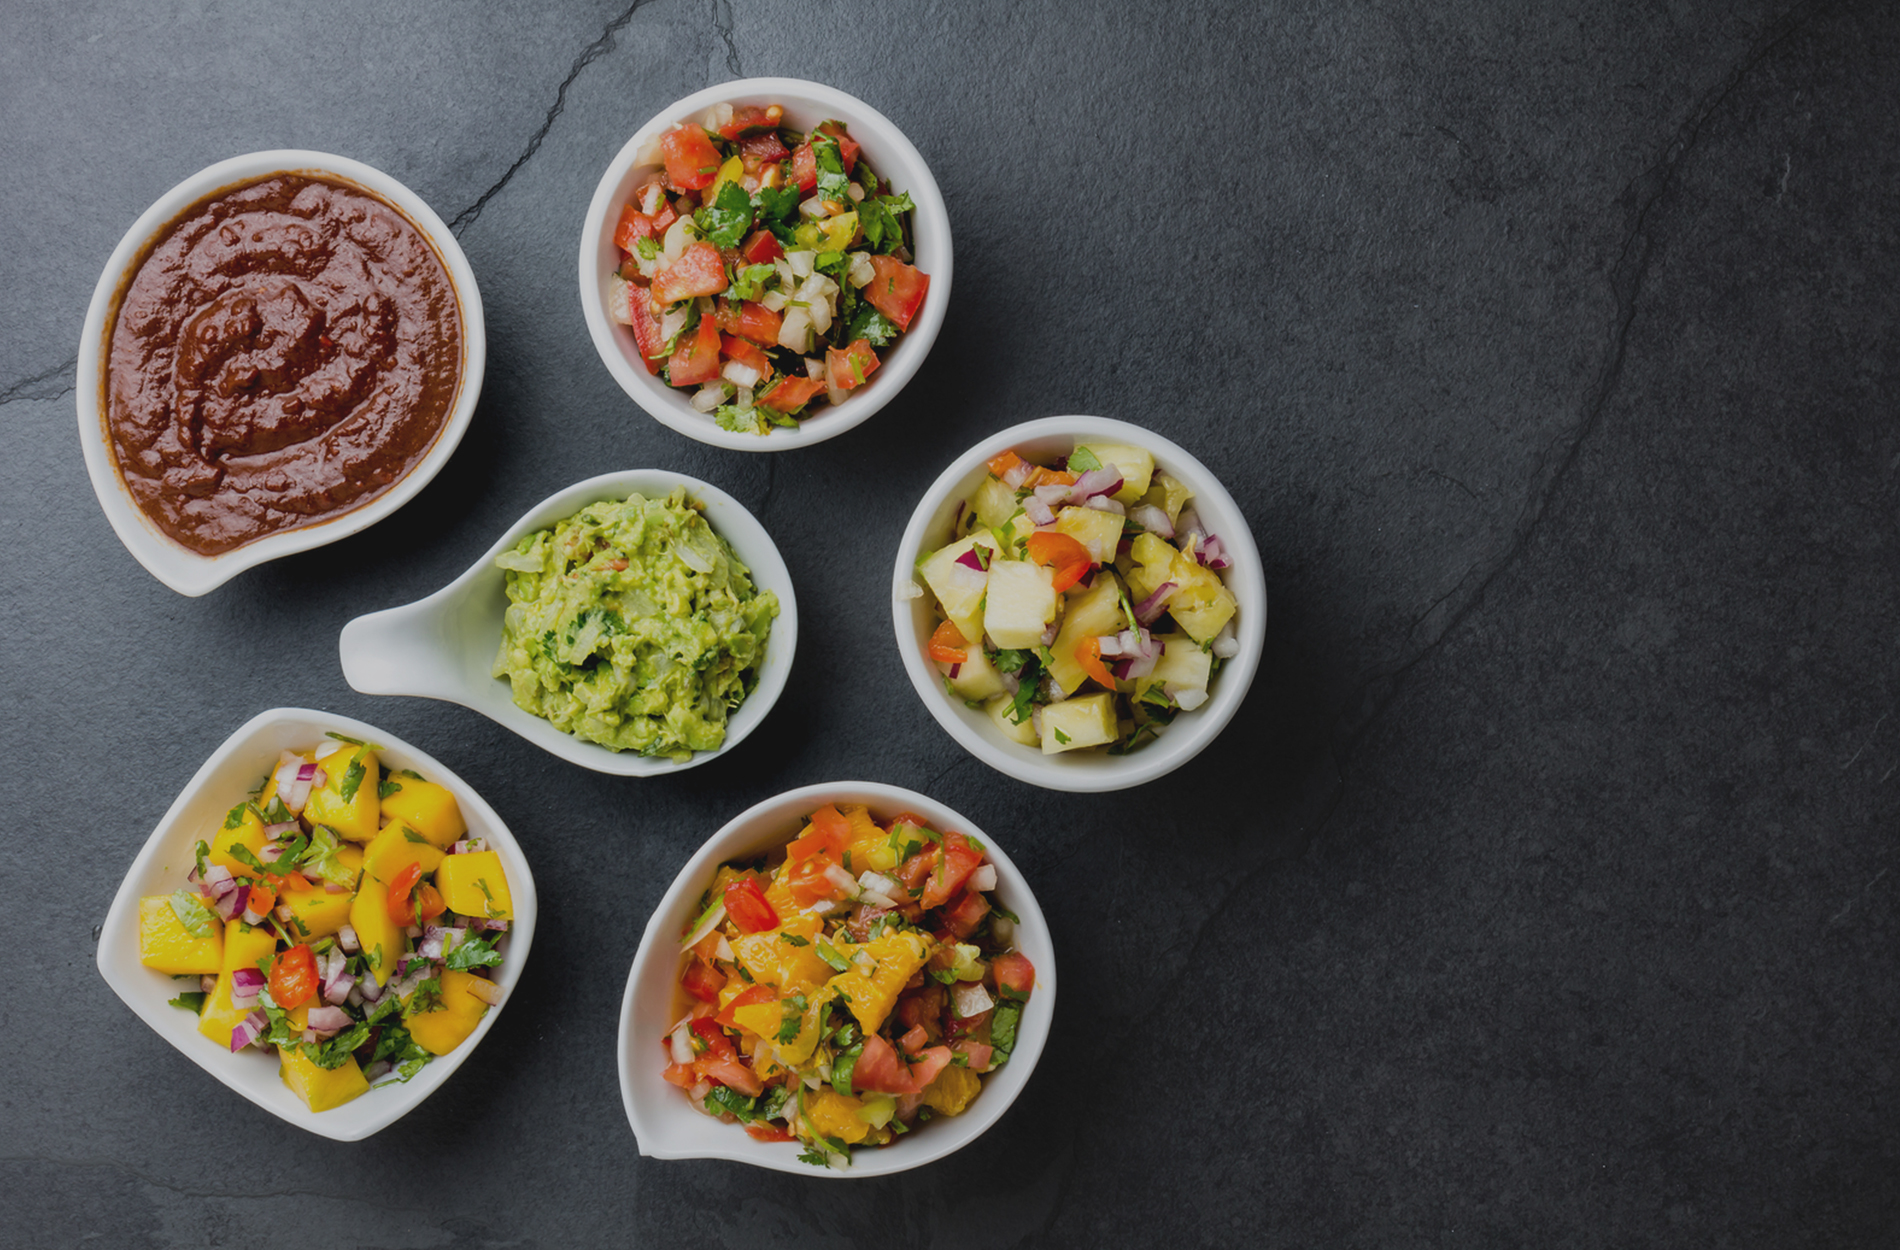 Did You Know? We prepare salsas, dips & dressings fresh in-store daily